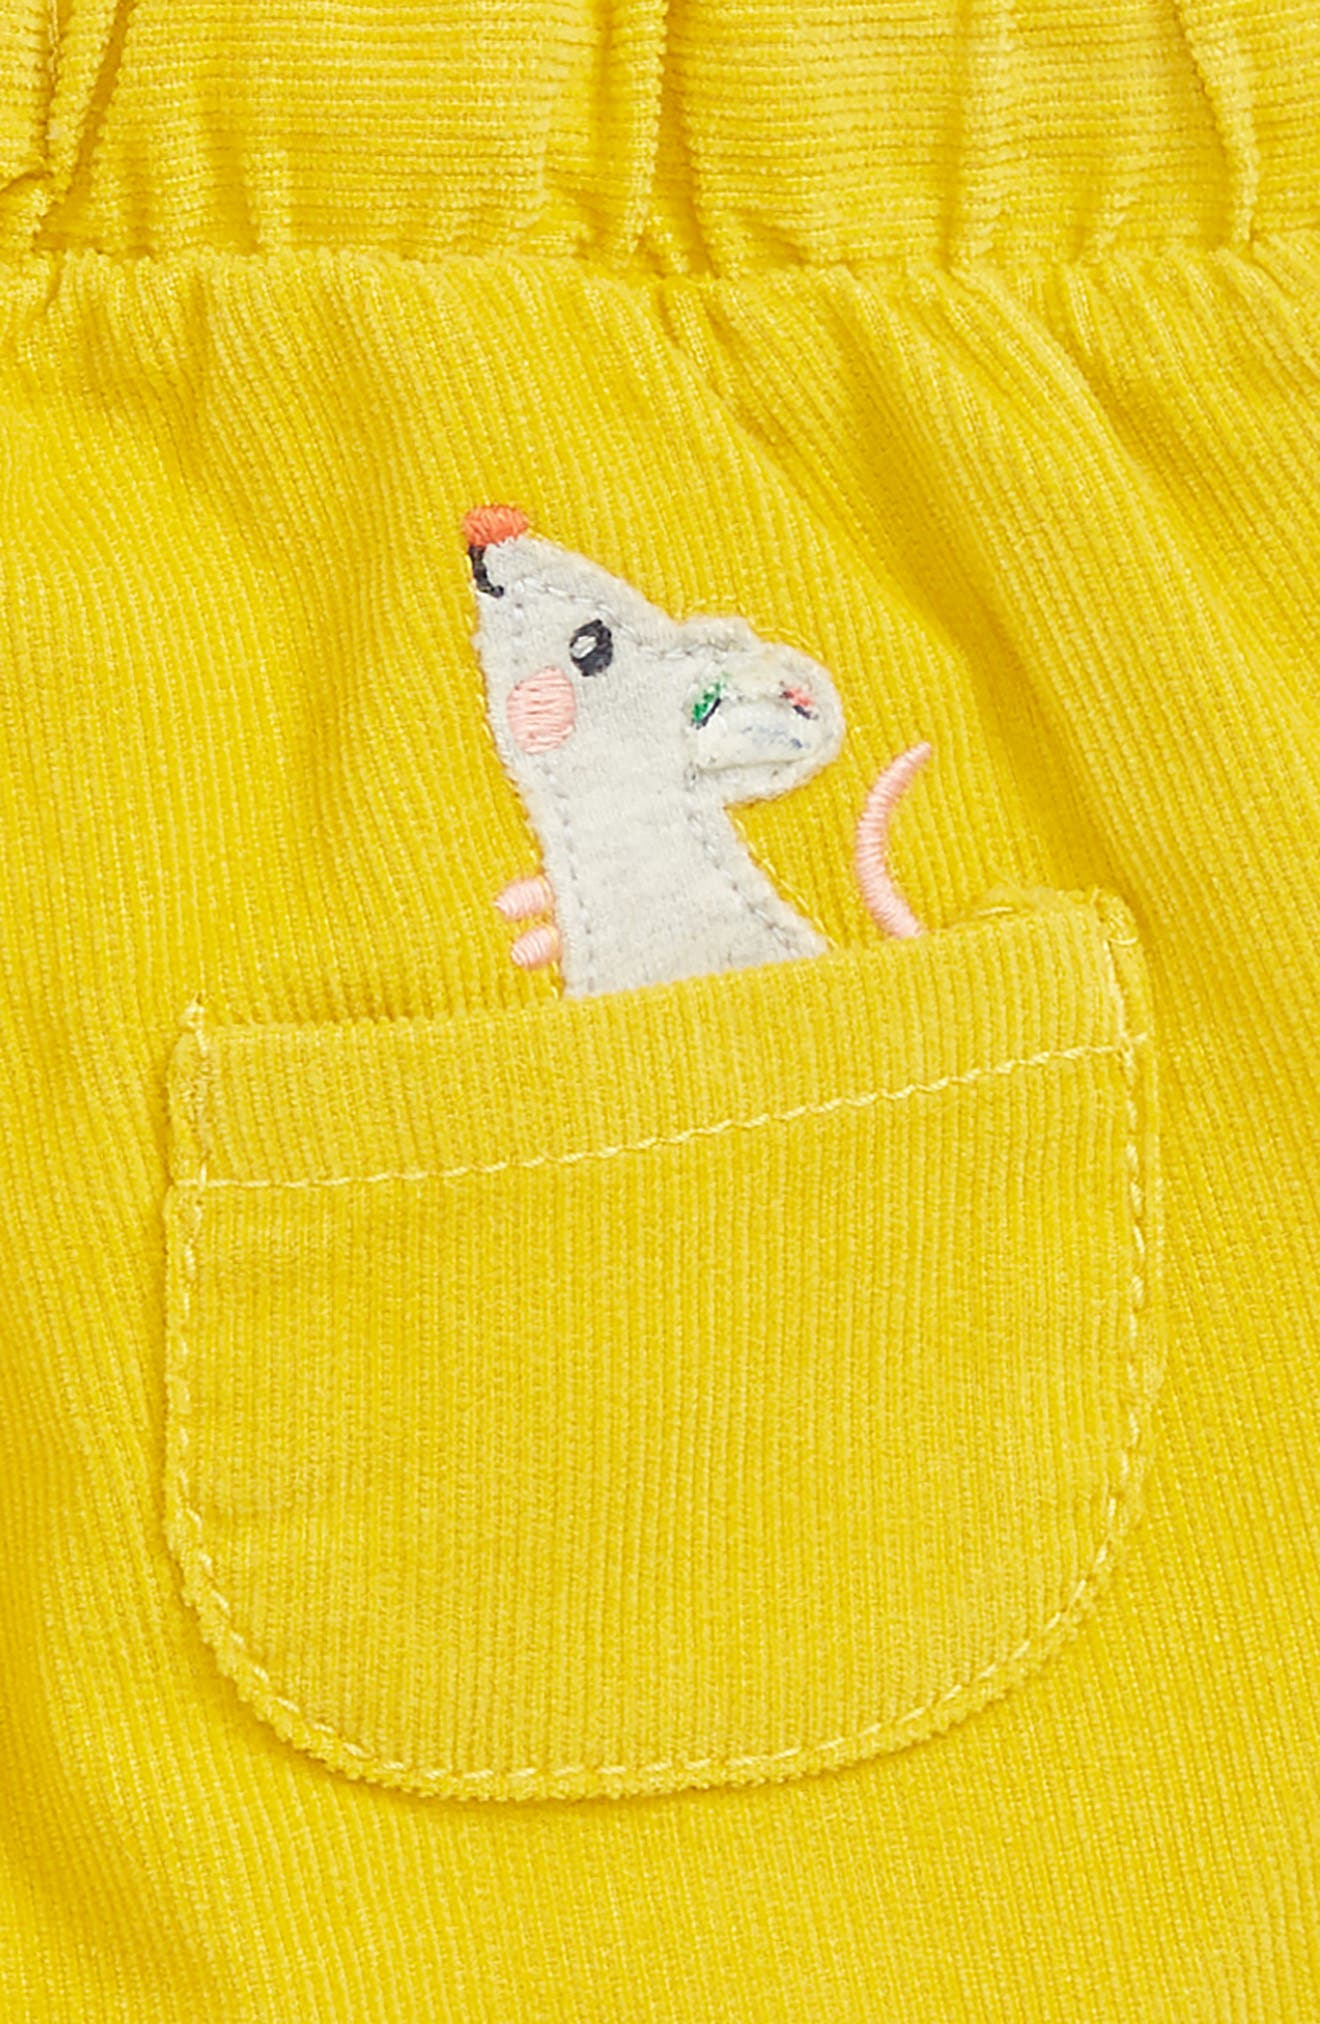 Appliqué Pocket Pants,                             Alternate thumbnail 3, color,                             HONEYCOMB/ MOUSE